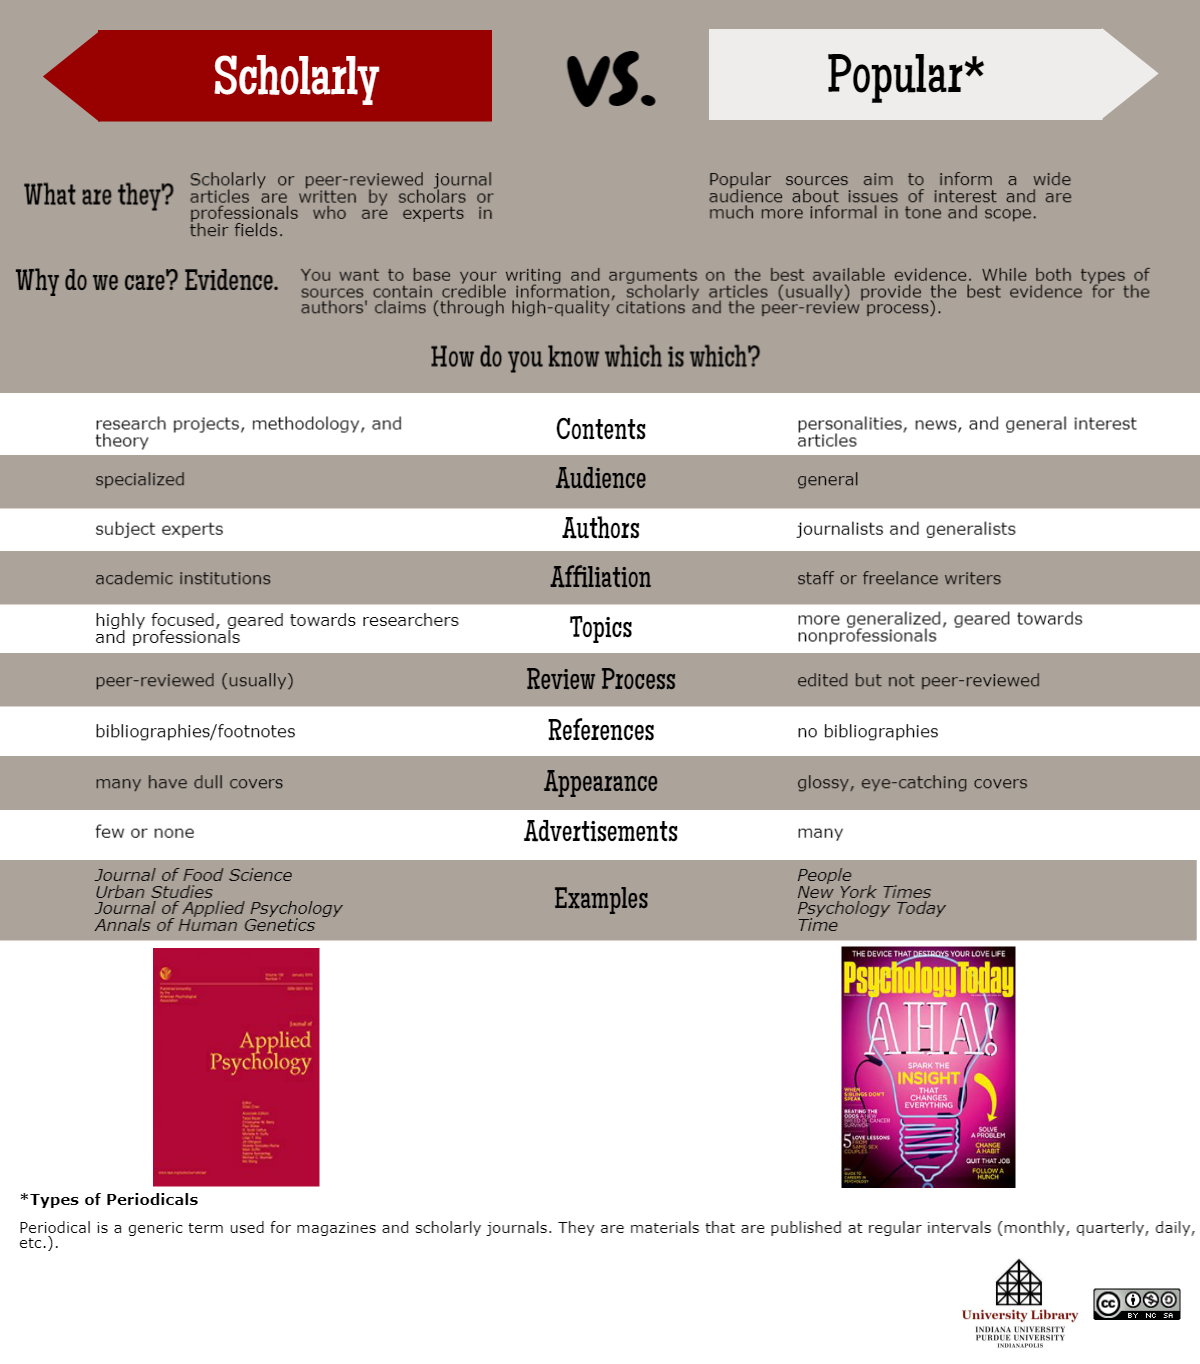 Scholarly vs. Popular infographic